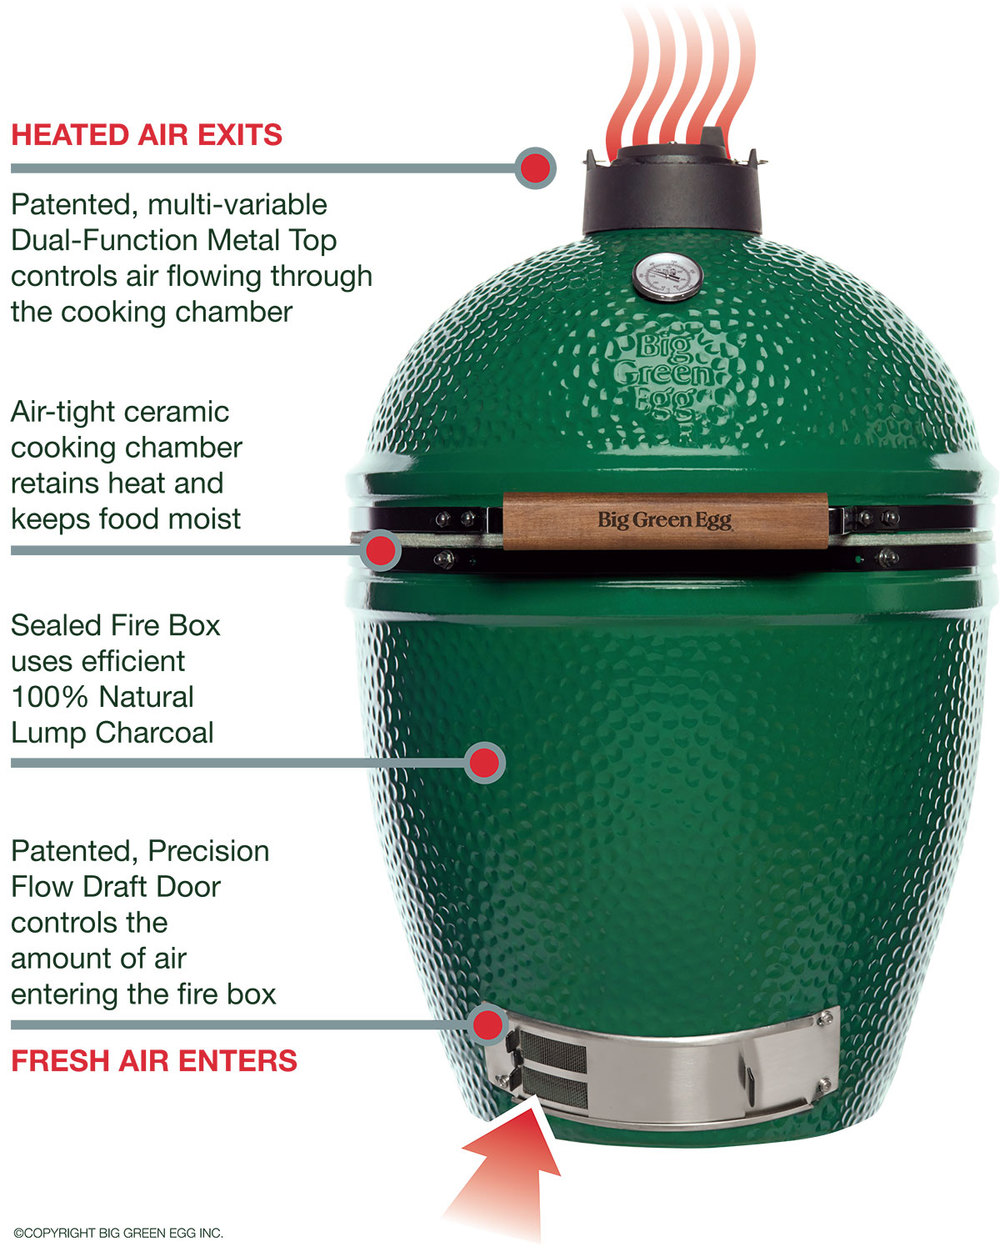 how-does-big-green-egg-work.jpg